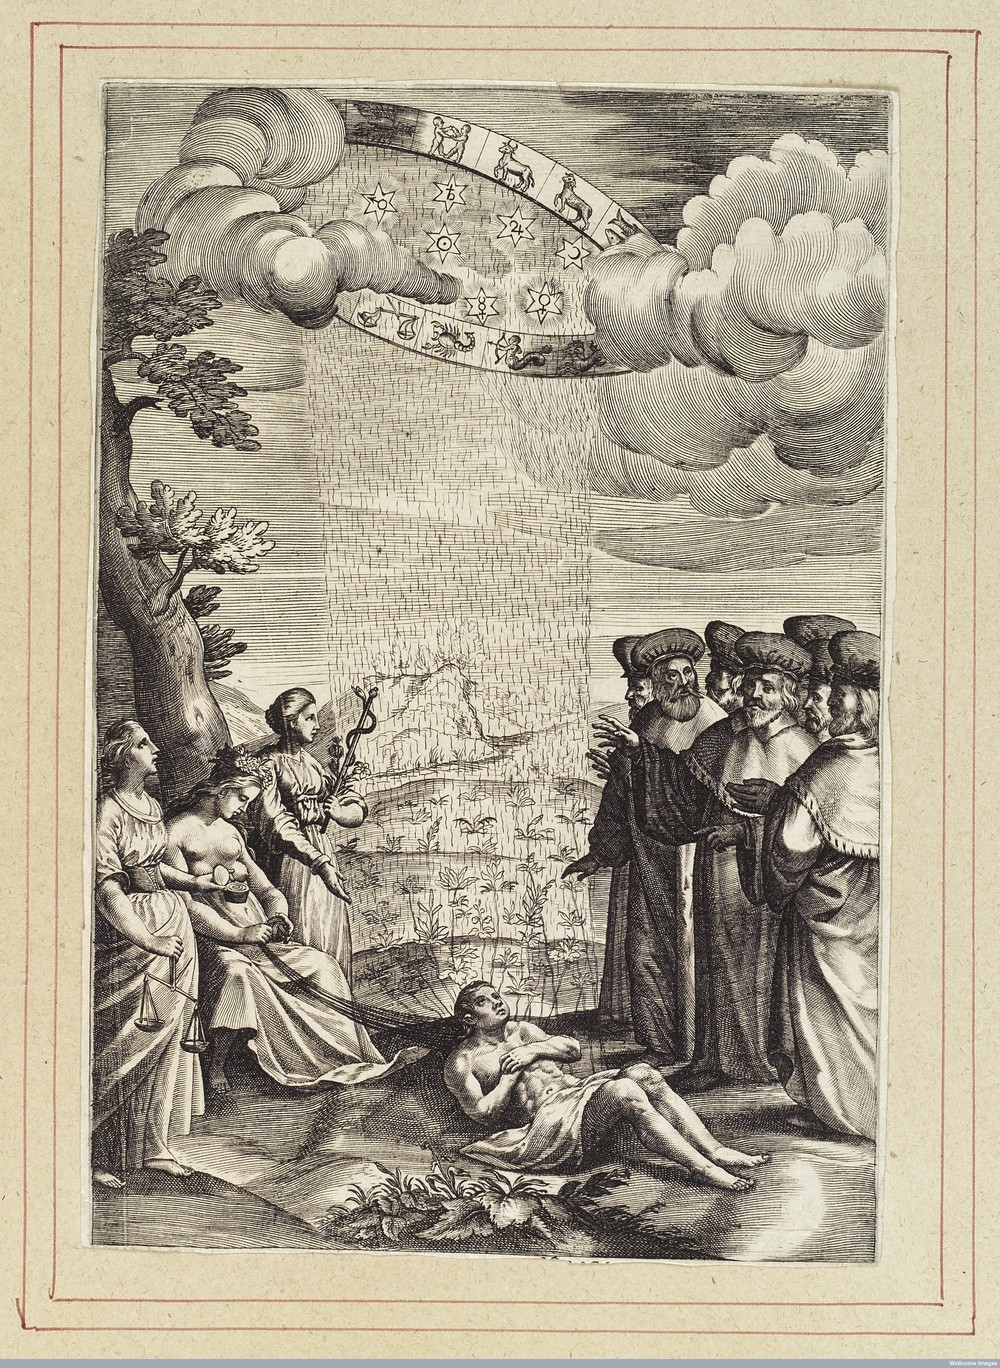 Image: France, likely 17th century,  Wellcome Library    L0040386 .